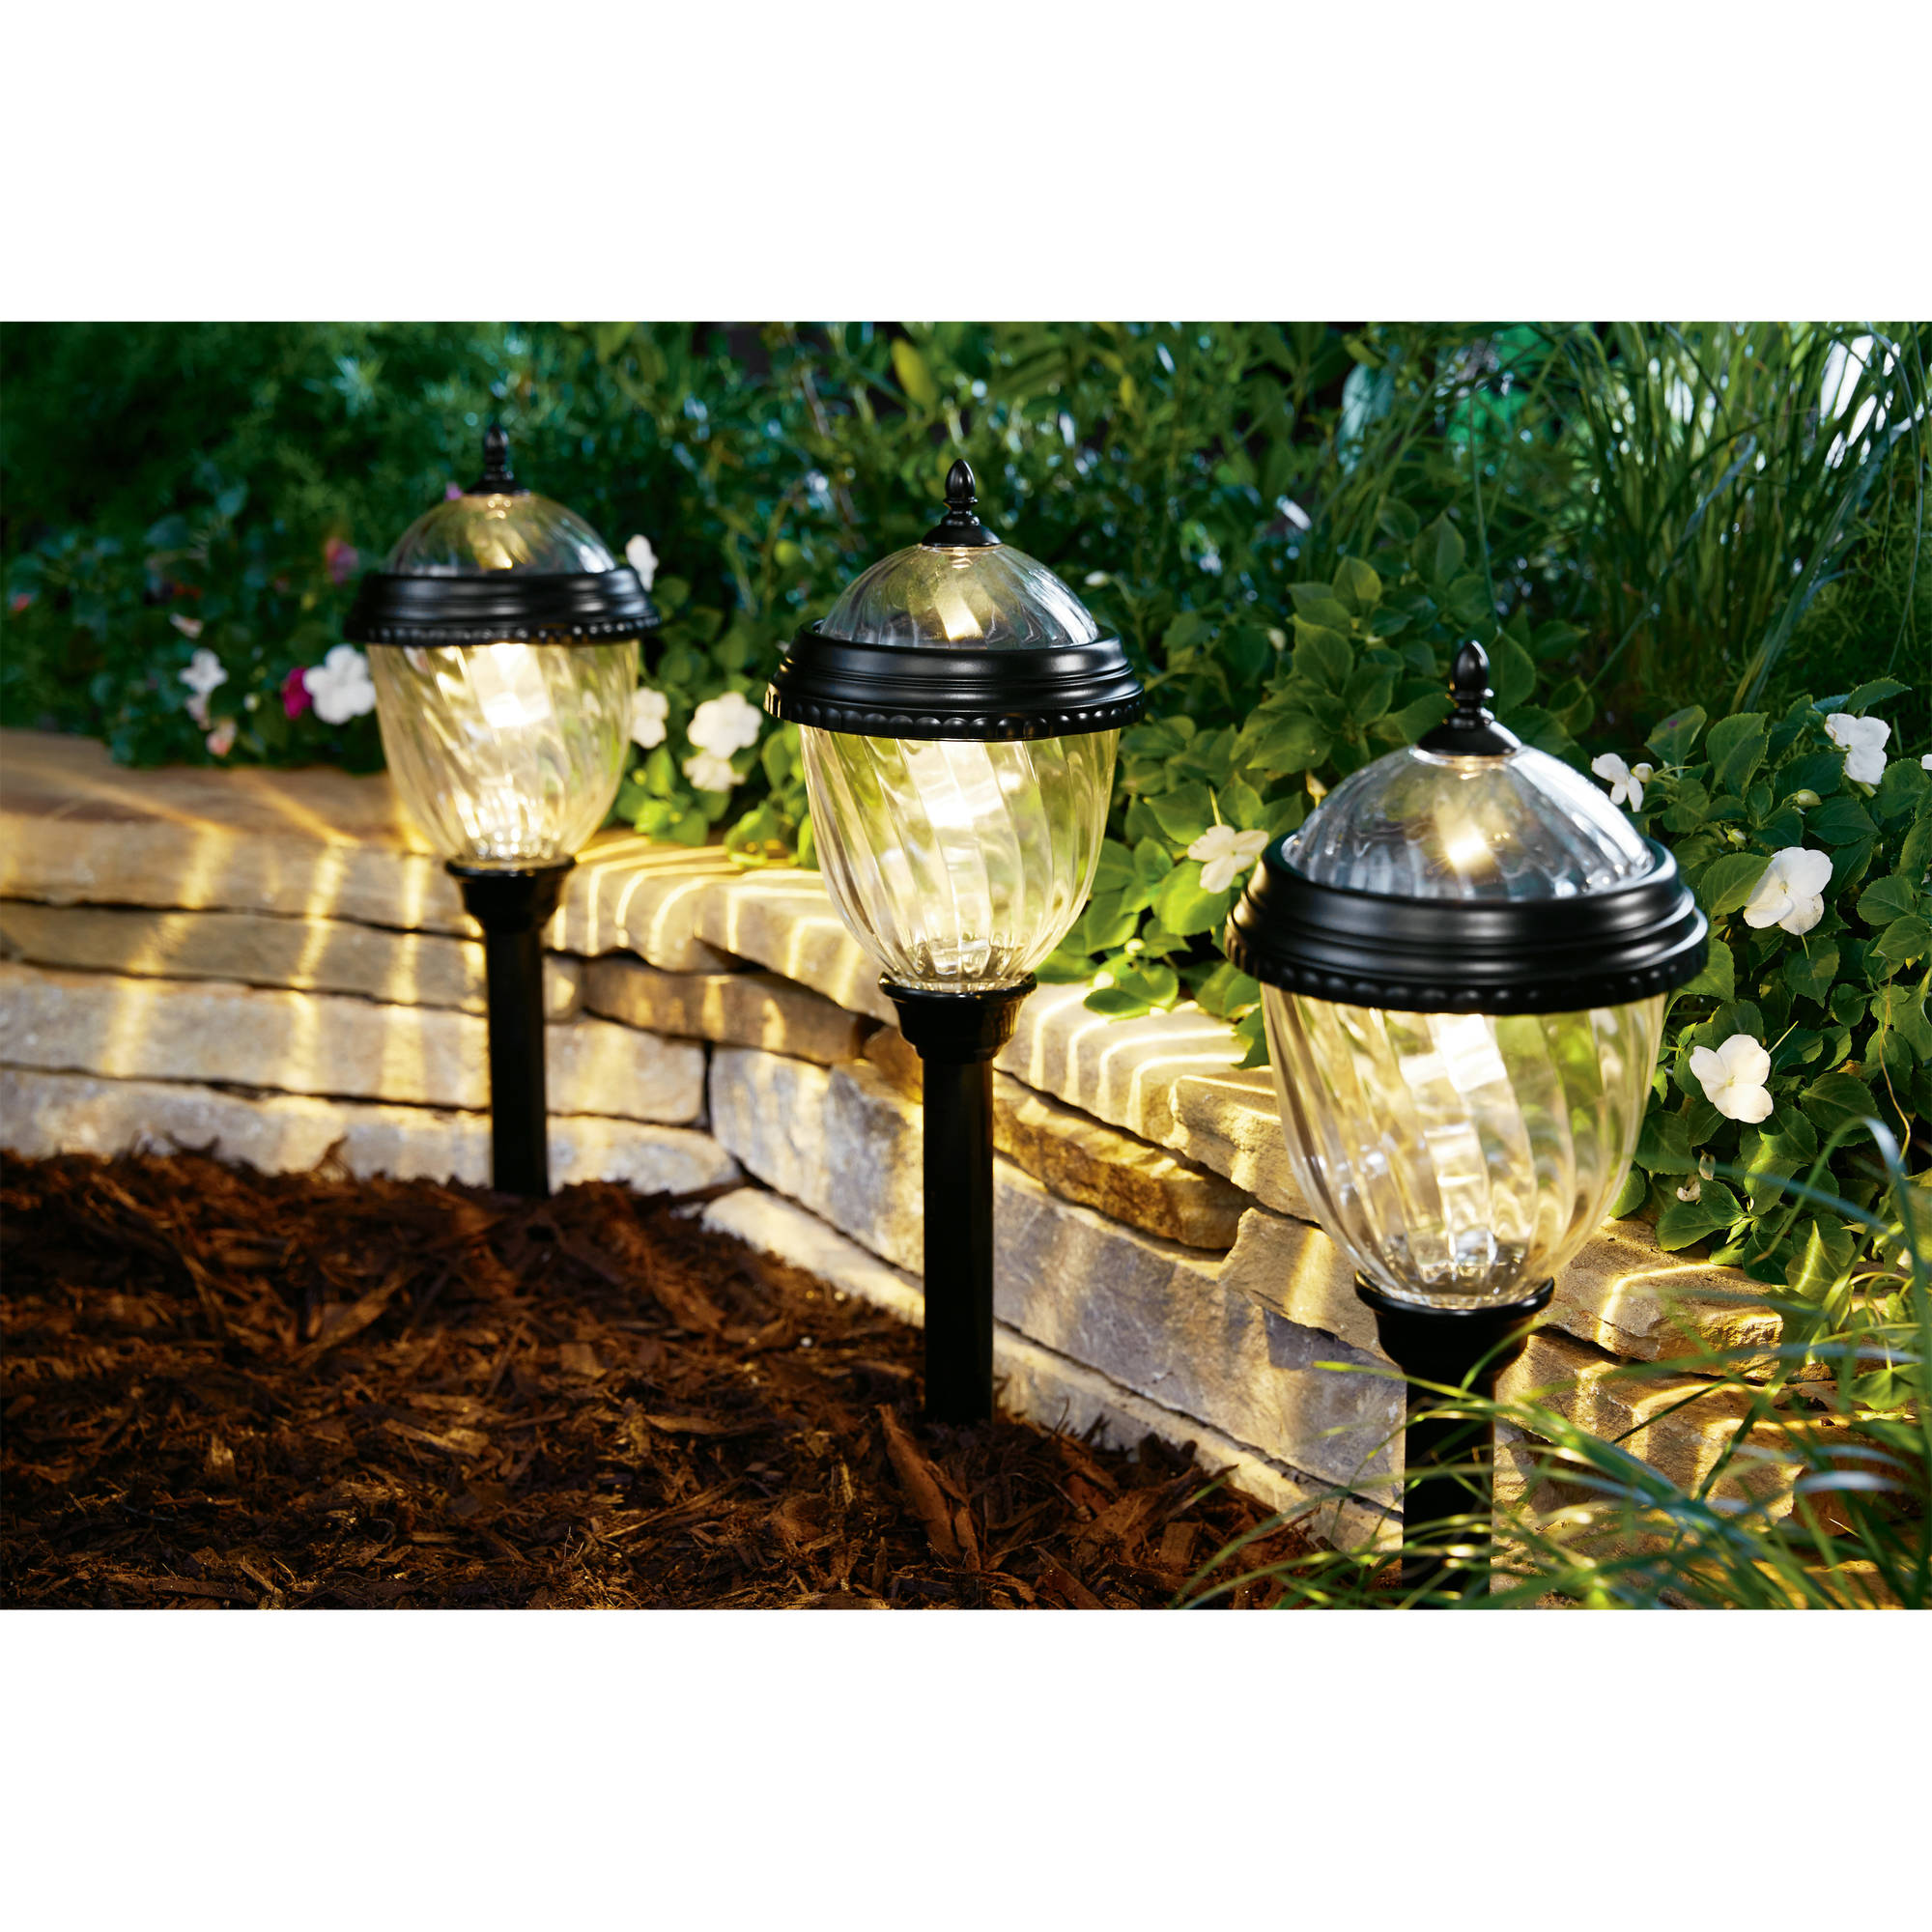 Better Homes and Gardens Castlewood Solar-Powered Landscape Light Set by SKY RICH STAR LIMITED